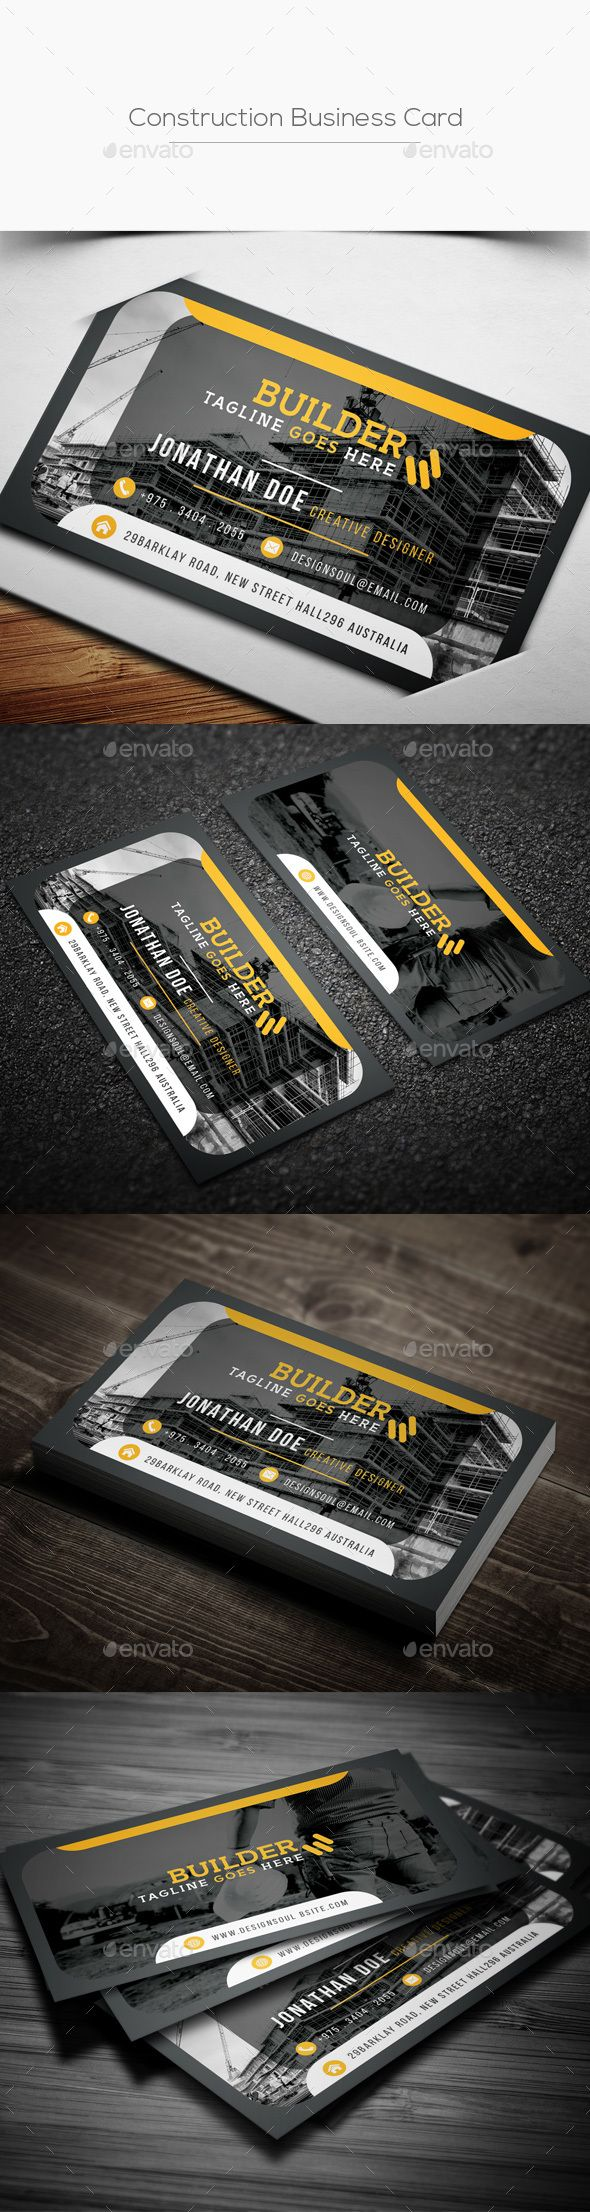 Best 25 construction business cards ideas on pinterest business construction business card corporate business cards download here https magicingreecefo Images